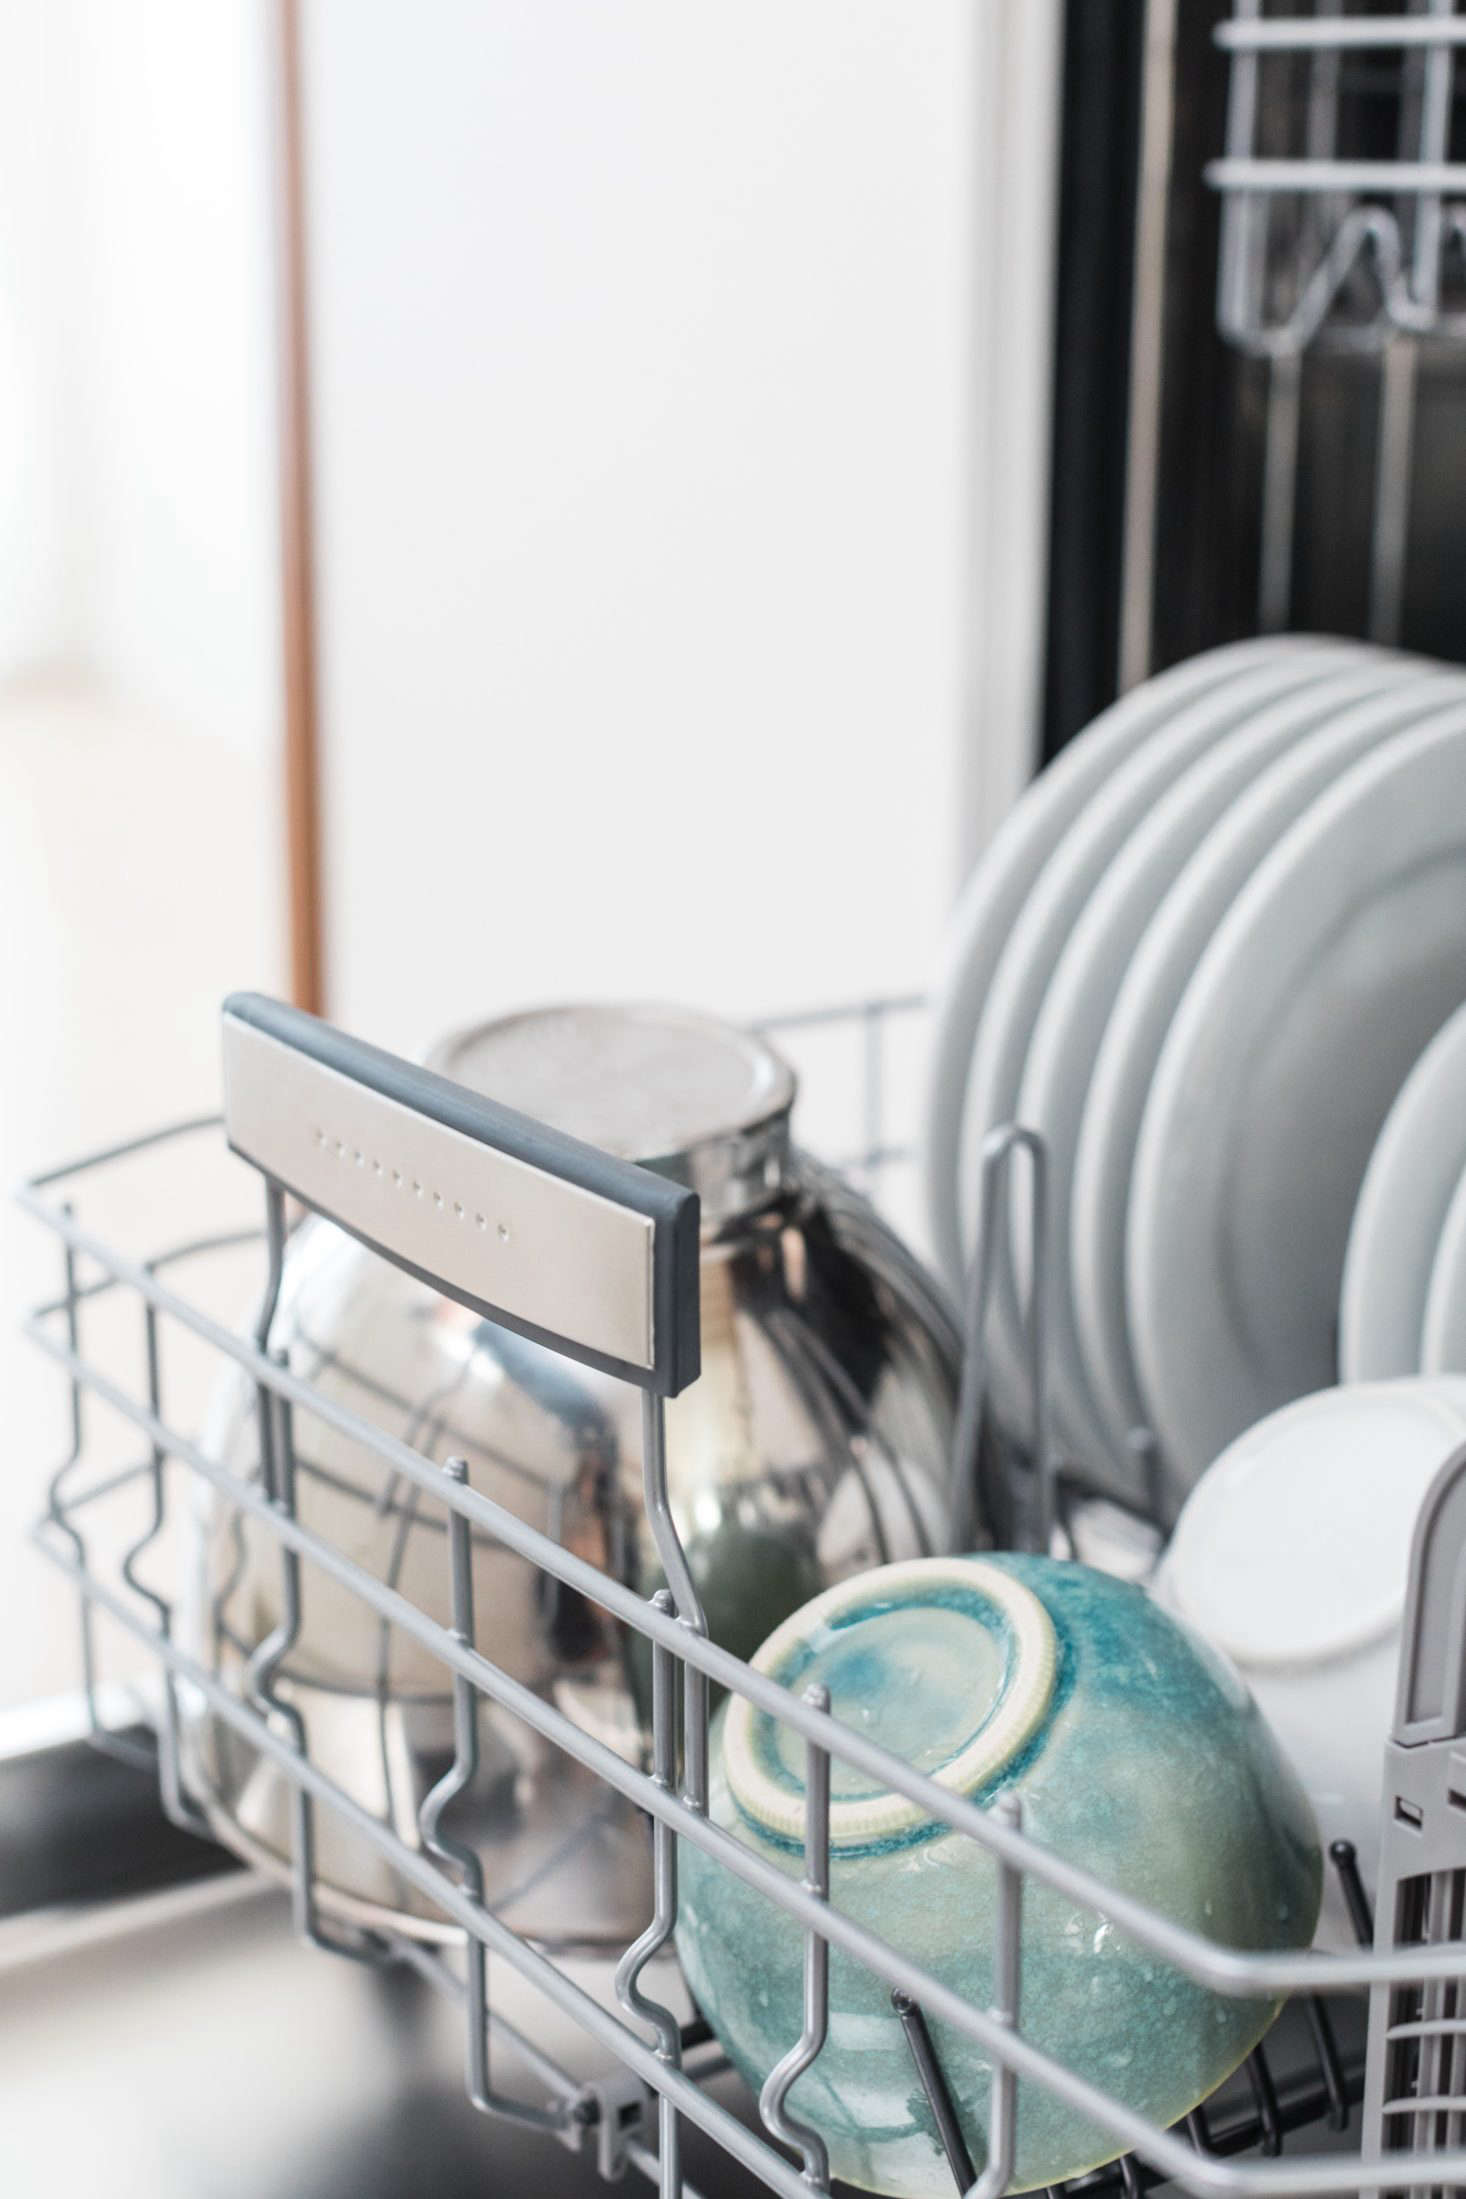 Expert Advice From Bosch How To Load A Dishwasher